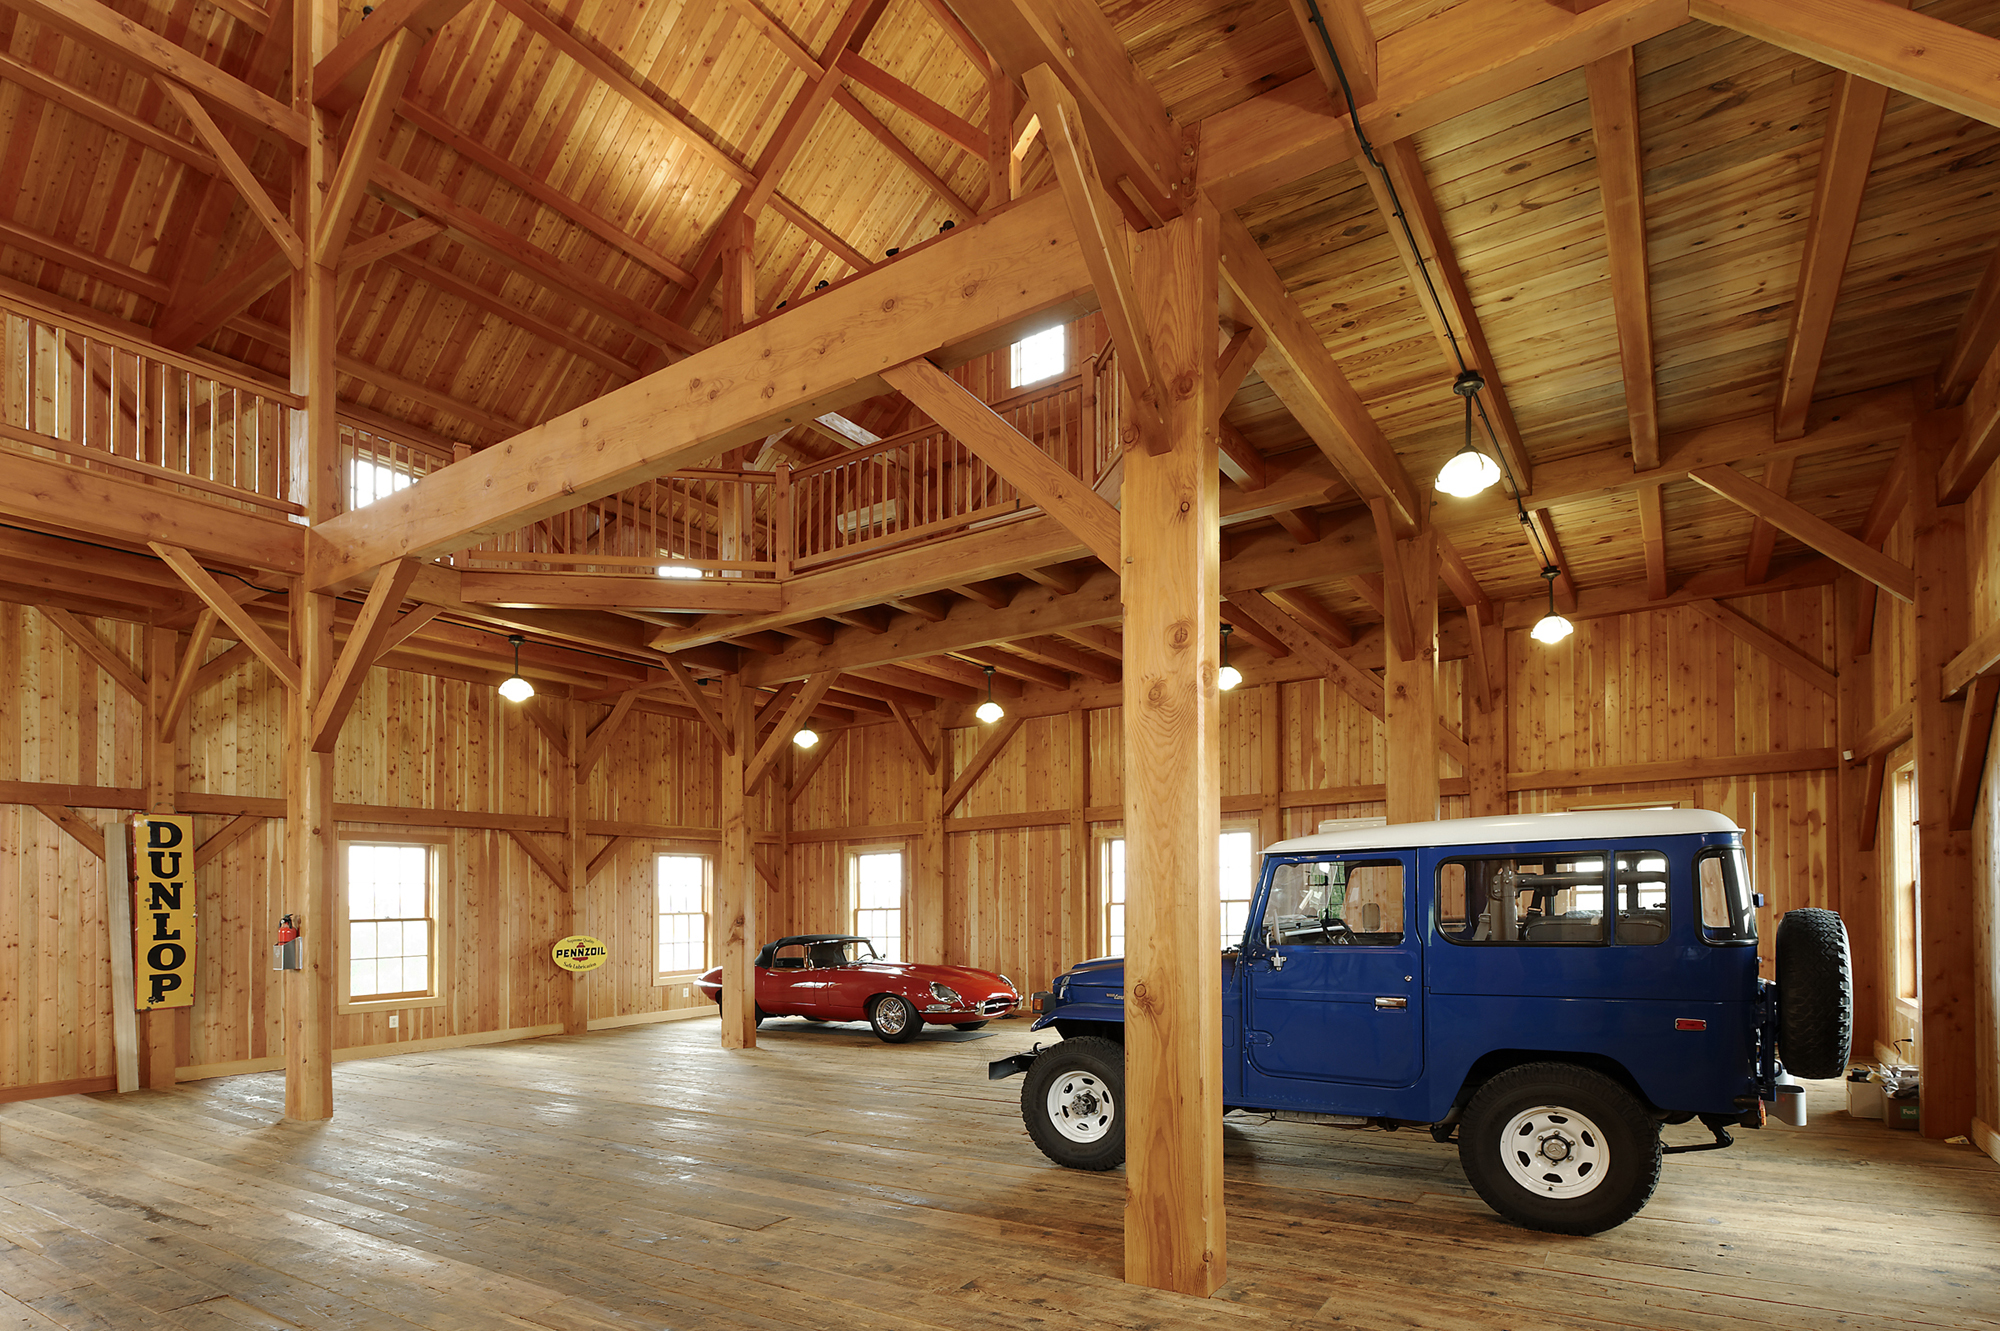 Rustic Timberframe Photo Gallery Bowa Design Build